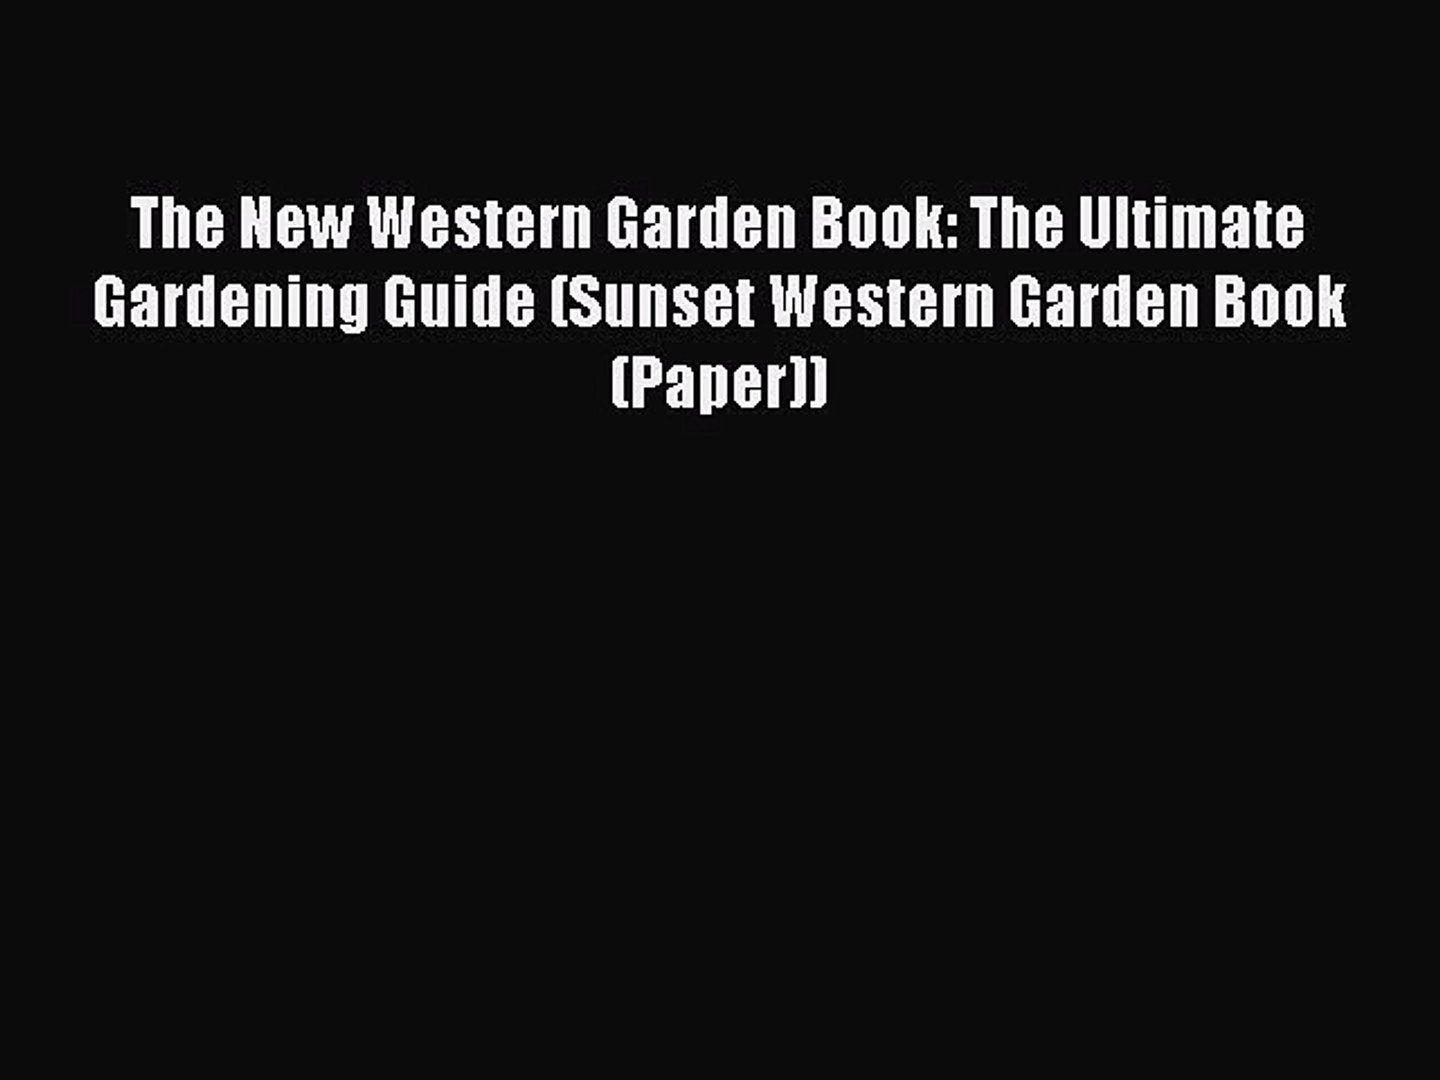 Read The New Western Garden Book: The Ultimate Gardening Guide (Sunset Western Garden Book